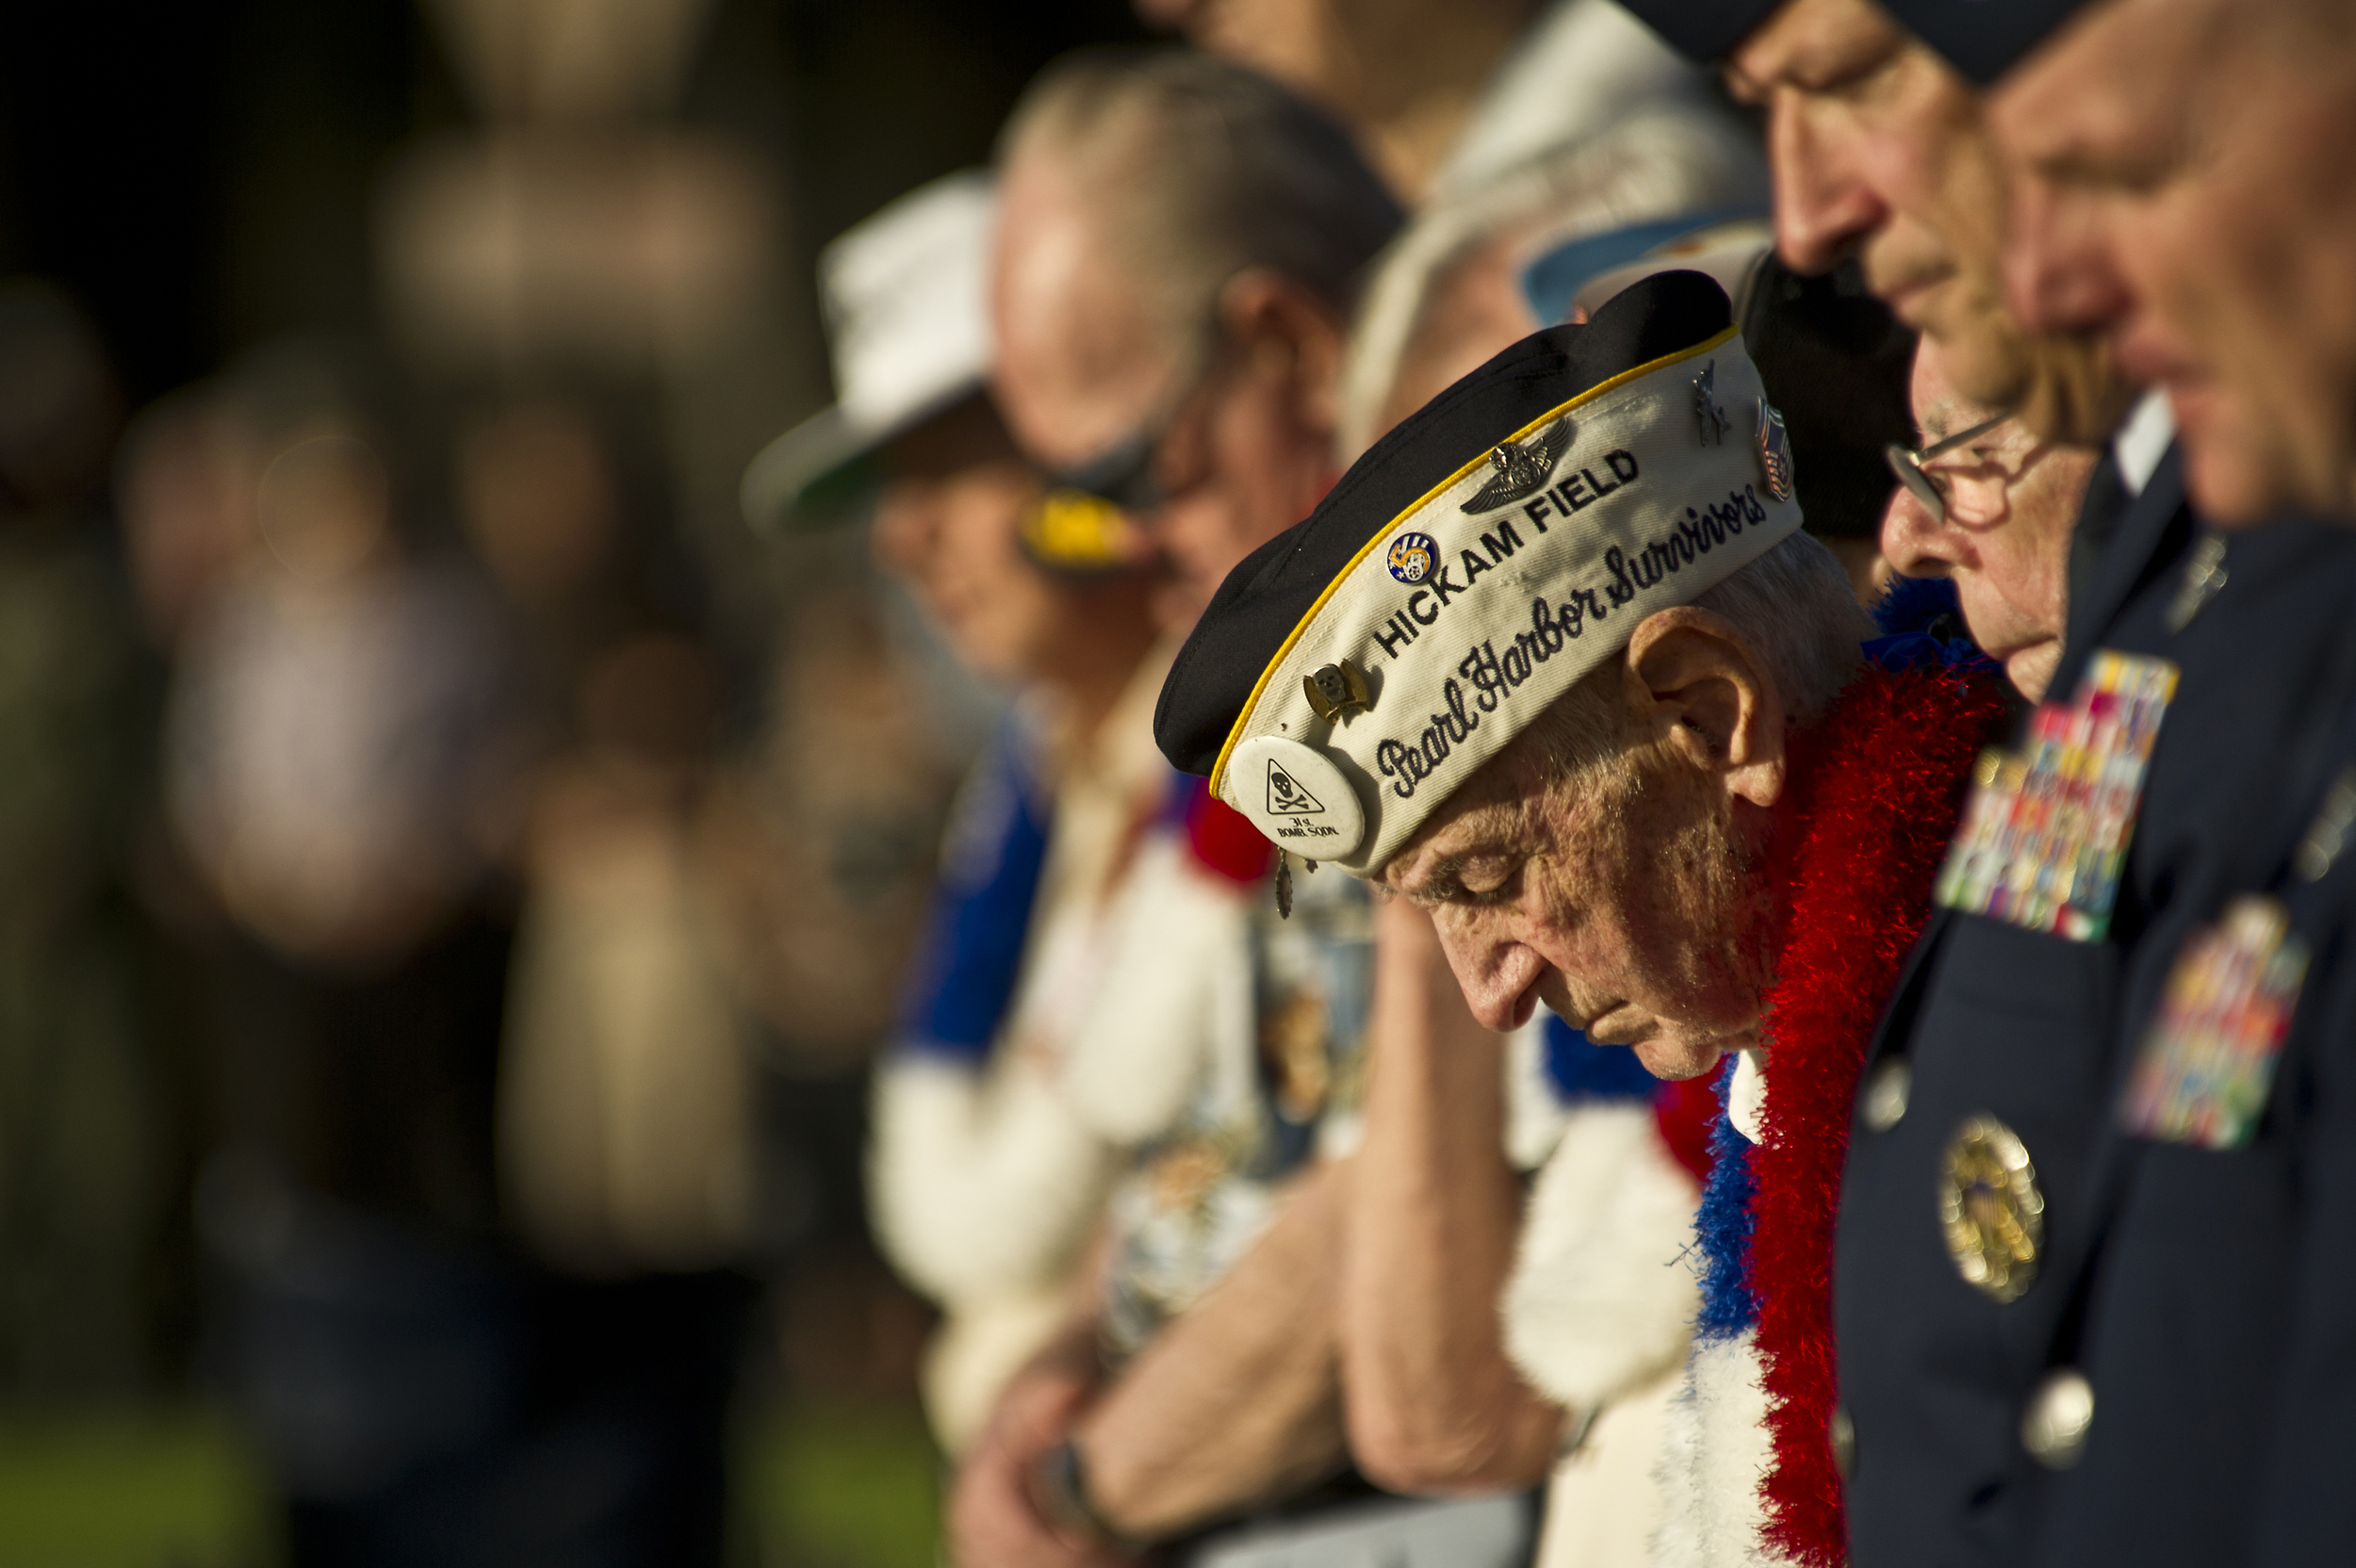 Veterans, recognized at a ceremony at Pearl Harbor on the 70th anniversary of the Dec. 7, 1941 attacks there.  Source